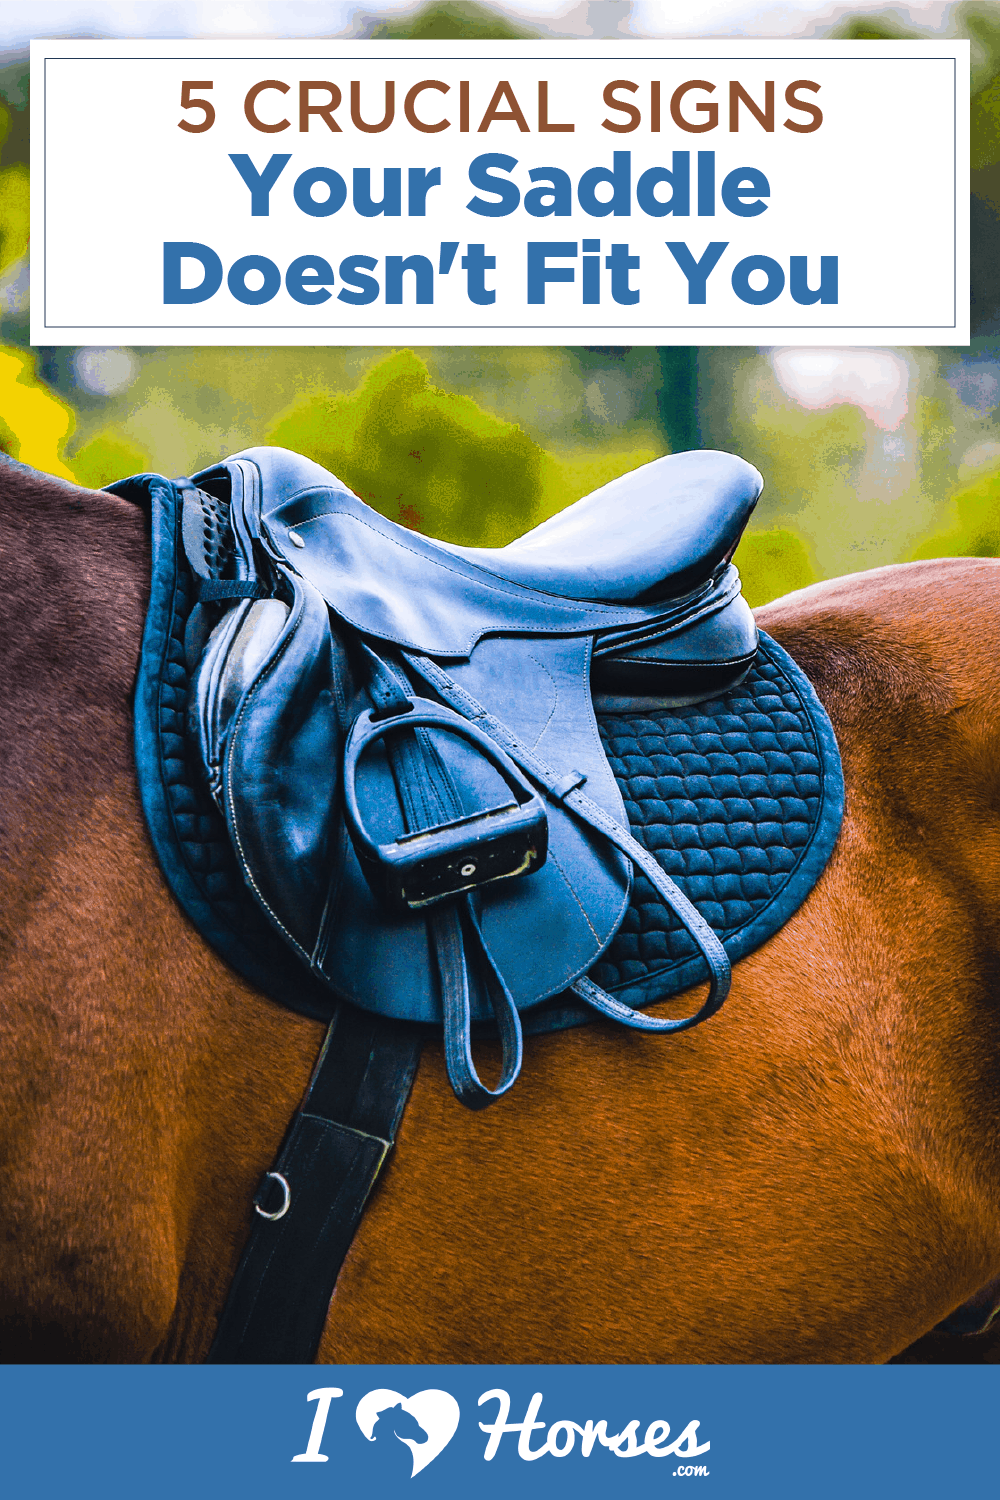 signs your saddle doesn't fit